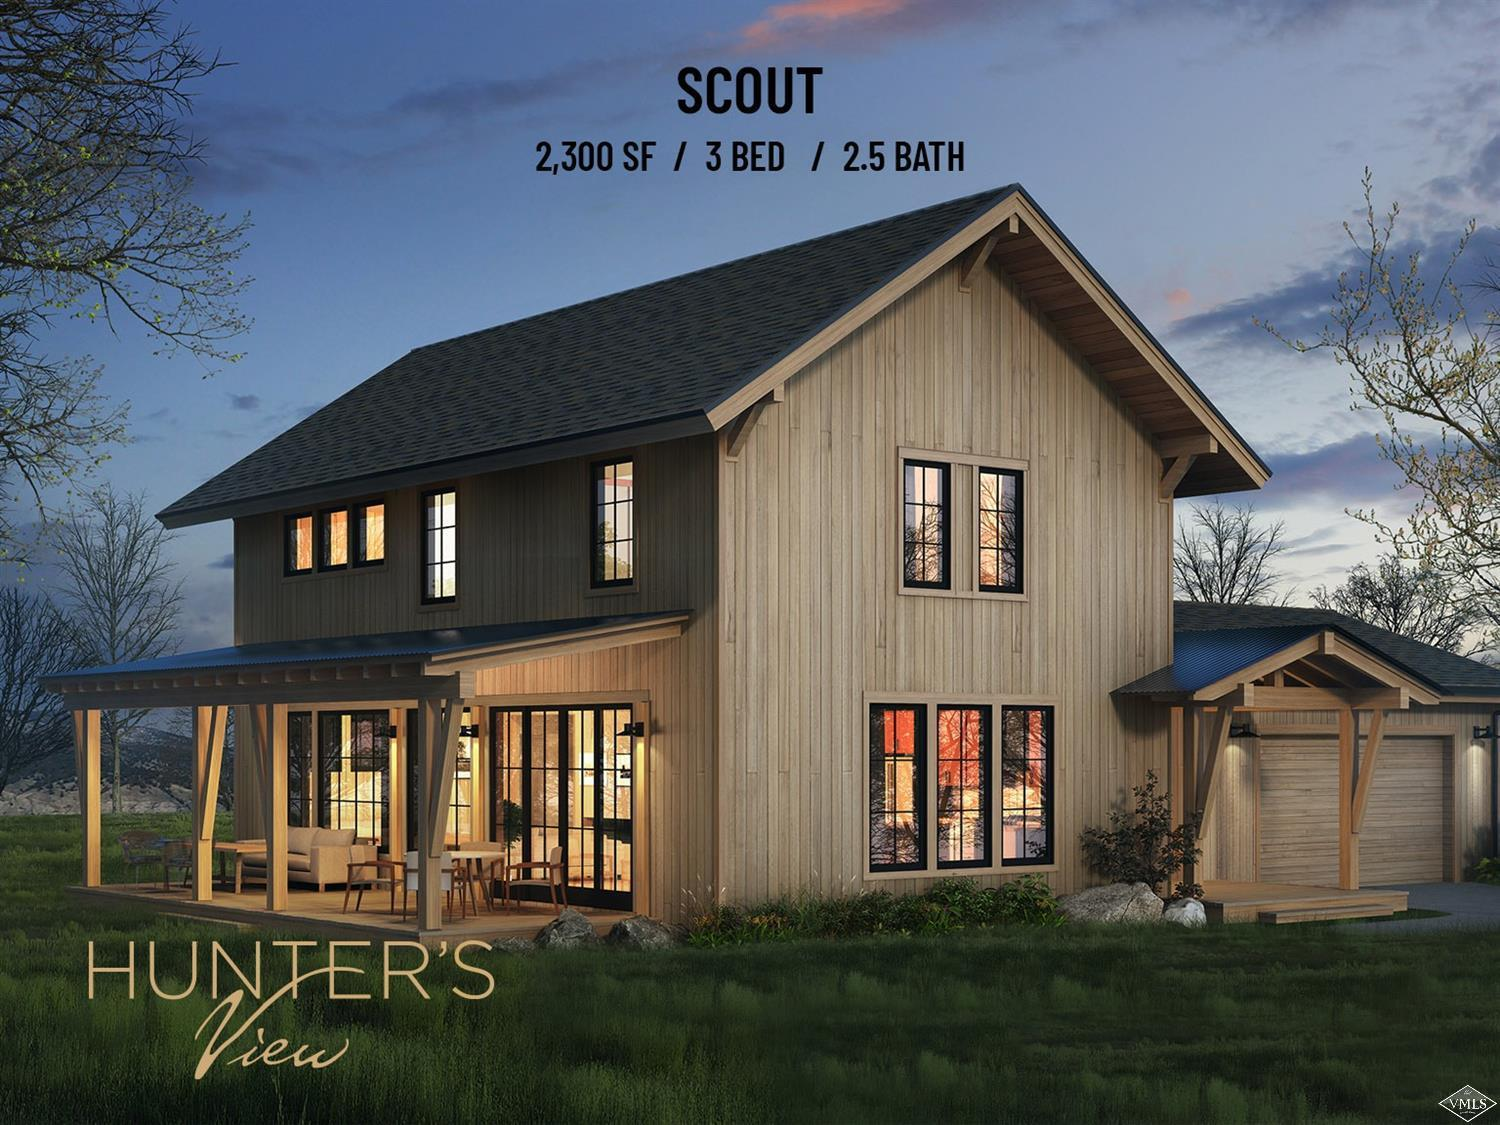 Started in Summer  of 2020 - Scout Models - Hunter's View Residences - Nestled on 81 acres, surrounded by pristine wilderness, Hunter's View is Frost Creek's newest real estate offering. Phase 2 (last 29 homes out of 44) are thoughtfully designed new construction homes, which is perfect combination of personalization and convenience. With 3 unique layouts and numerous additions to choose from, no two residences will be exactly the same.